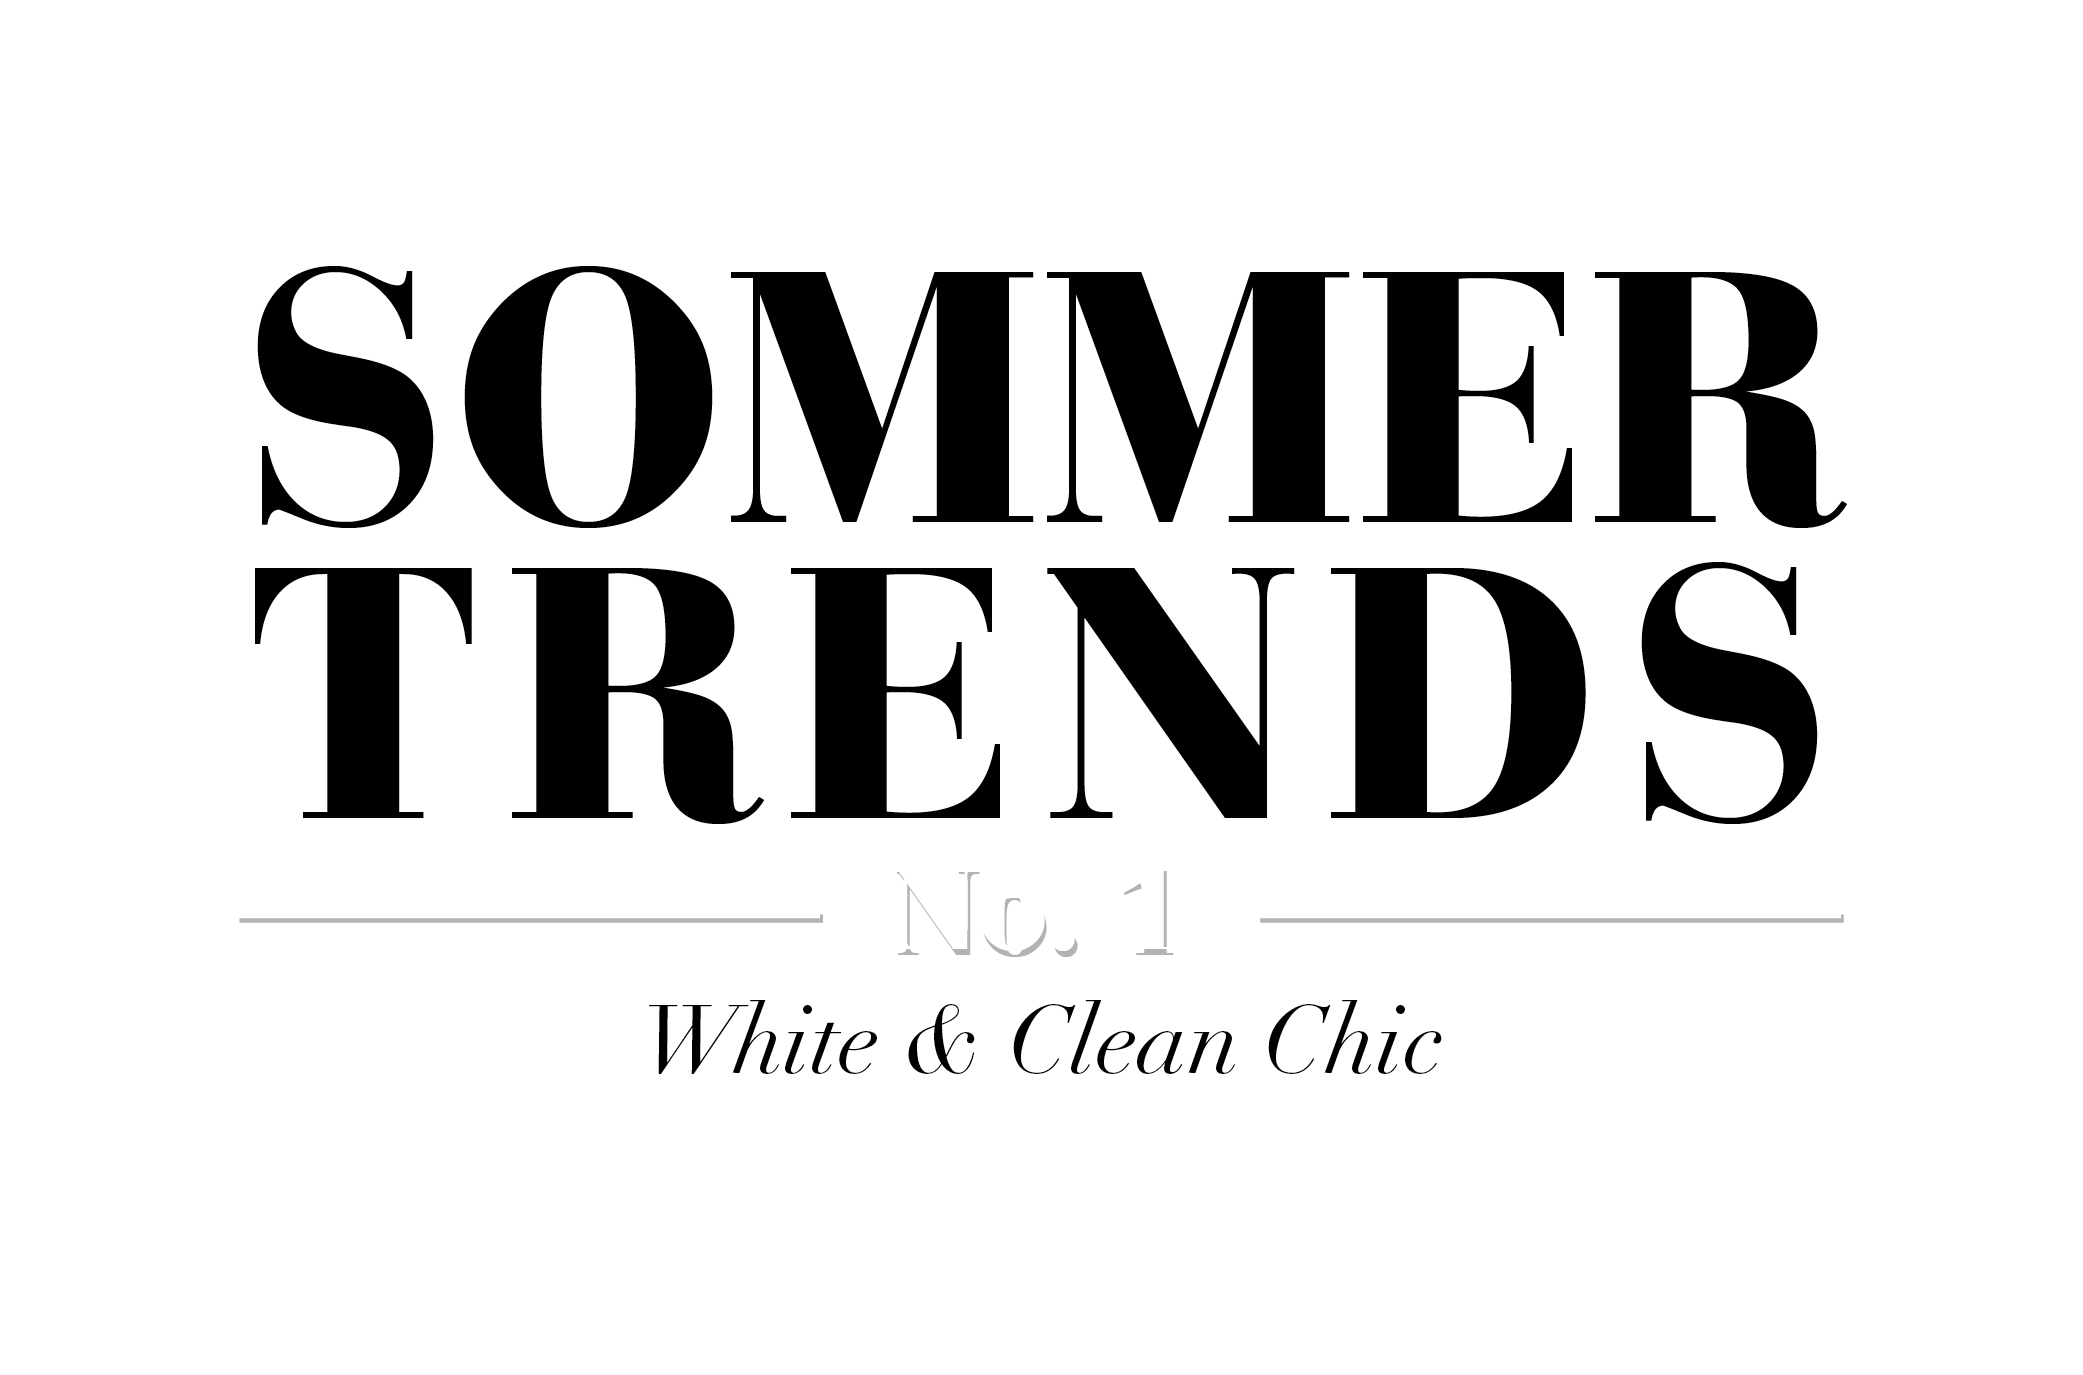 Sommertrends #1